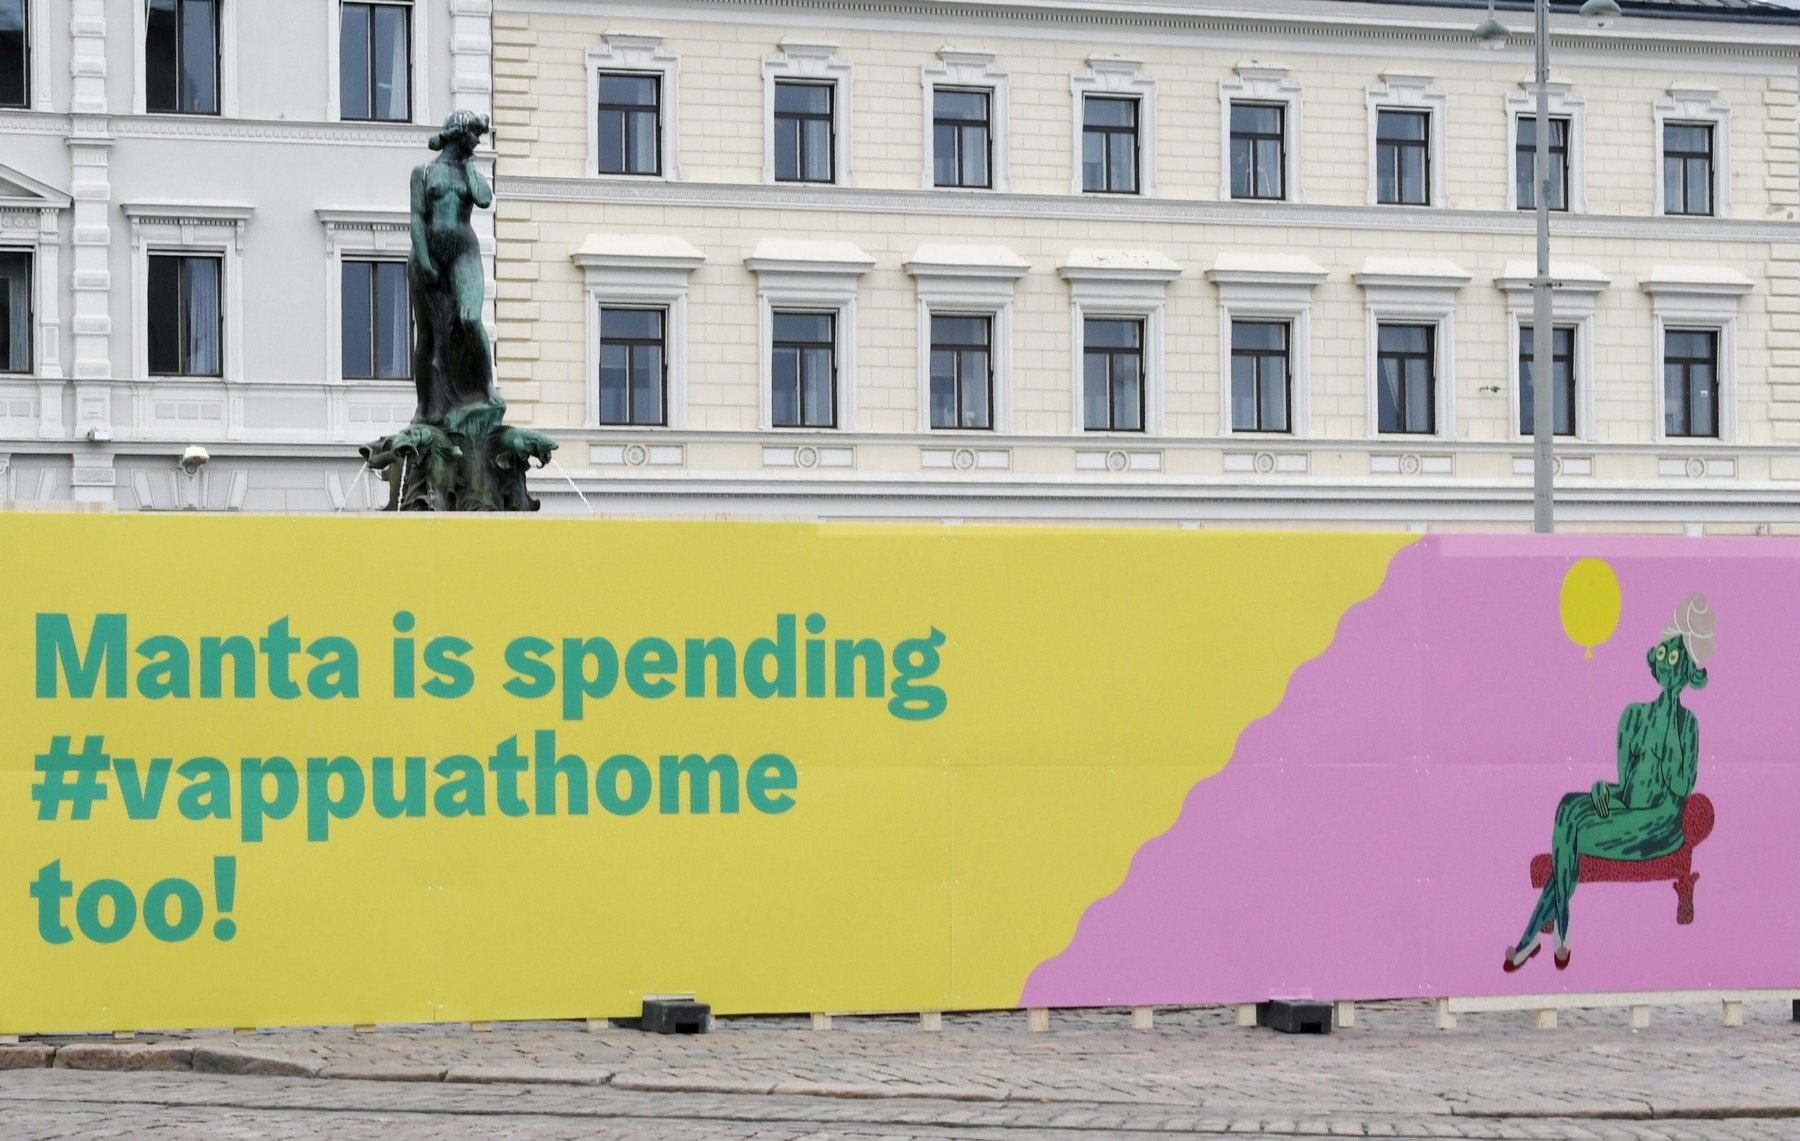 On Helsinki's Market Square, the Havis Amanda statue is surrounding by a temporary wall. A sign says that she is spending May Day at home.